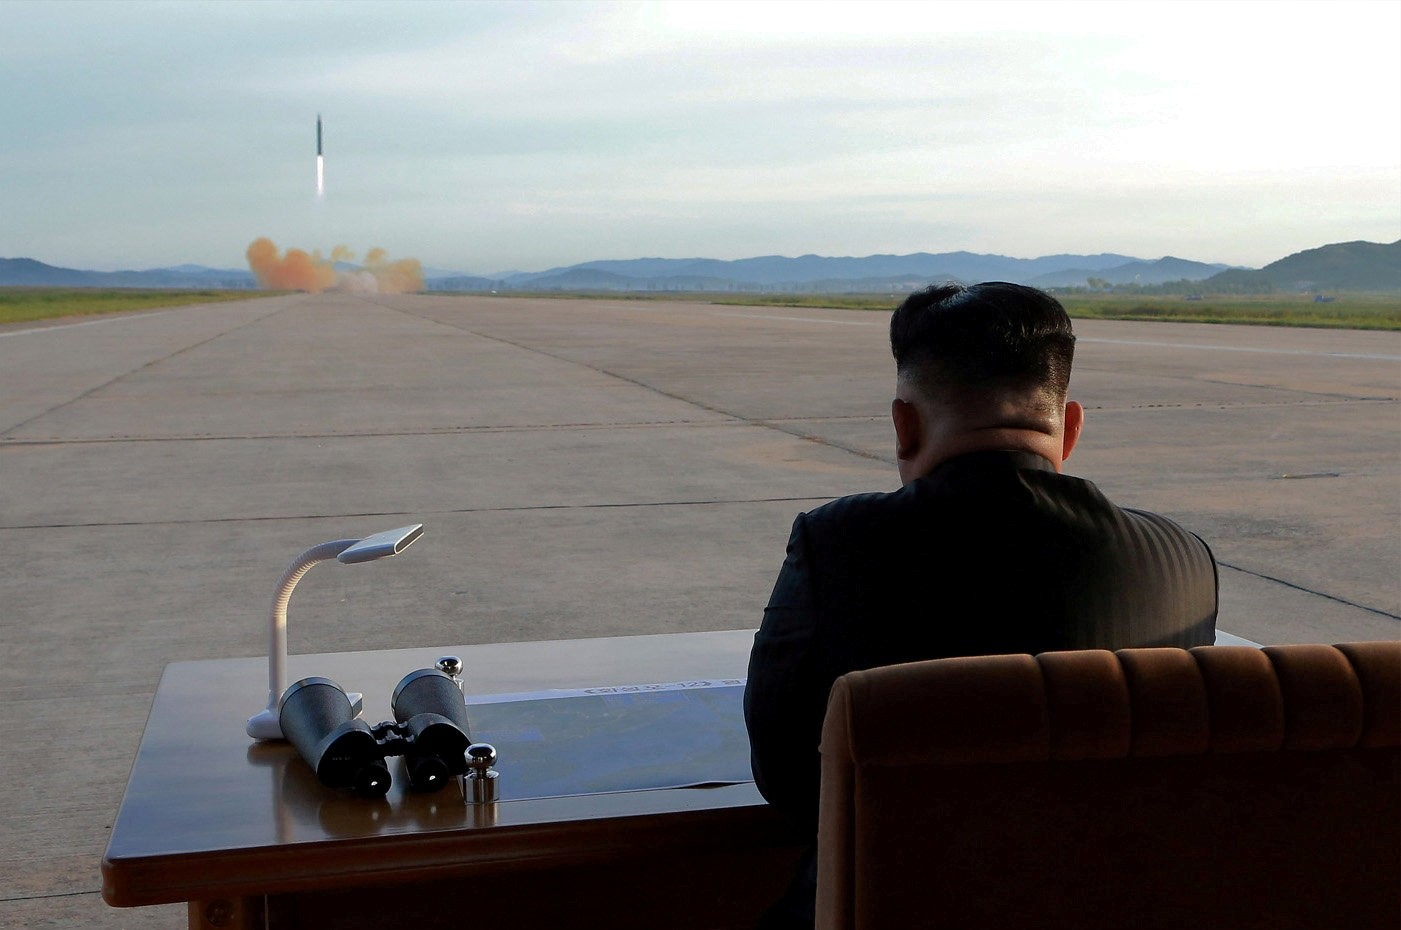 North Korean leader Kim Jong Un watches the launch of a Hwasong-12 missile in this undated photo released by North Korea's Korean Central News Agency on Sept. 16, 2017. (REUTERS Photo)